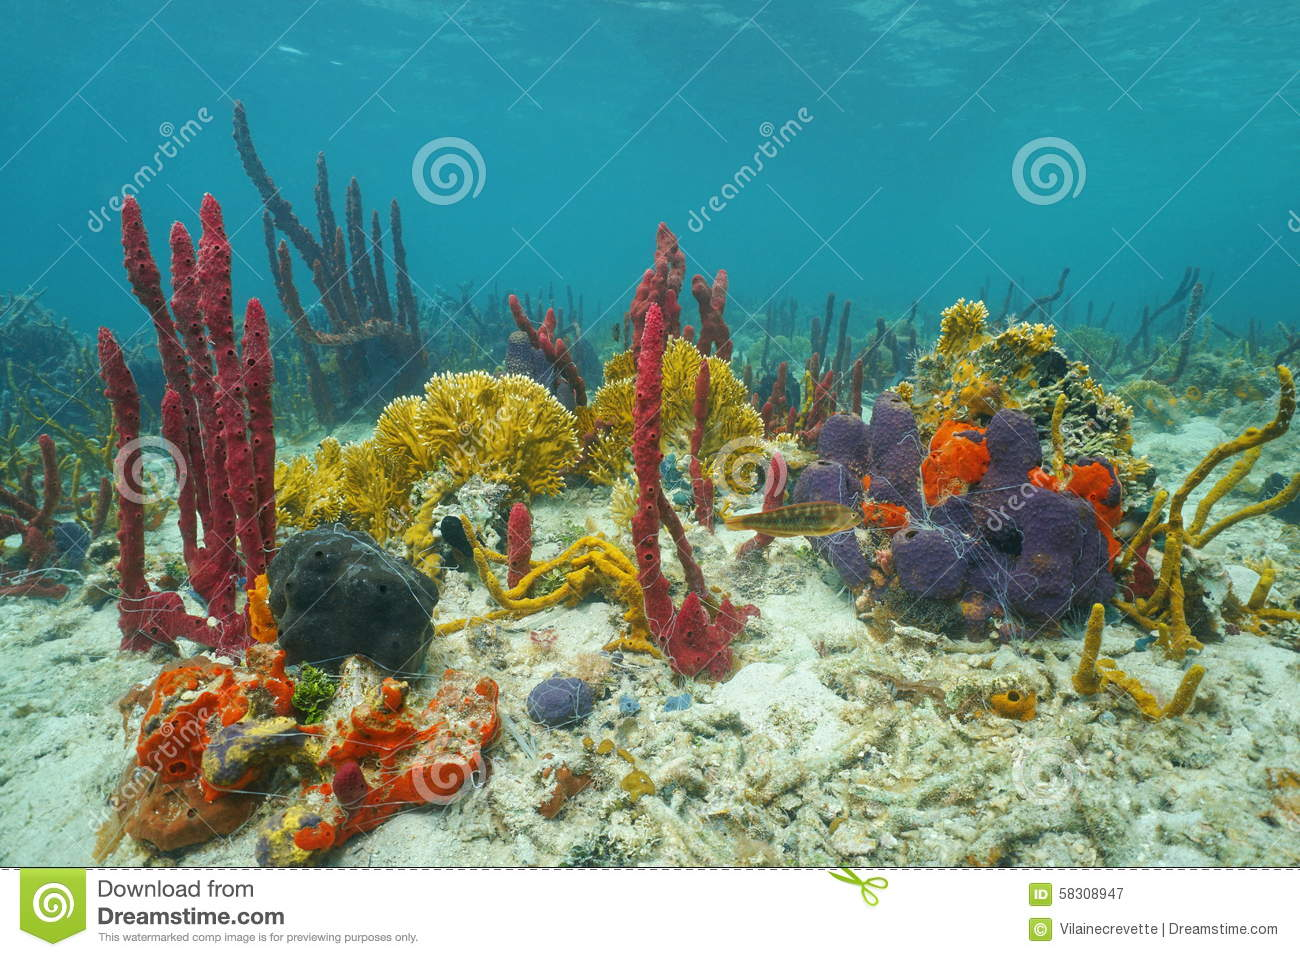 Ocean of Color - Wall Mural & Photo Wallpaper - Photowall |Colorful Underwater Life